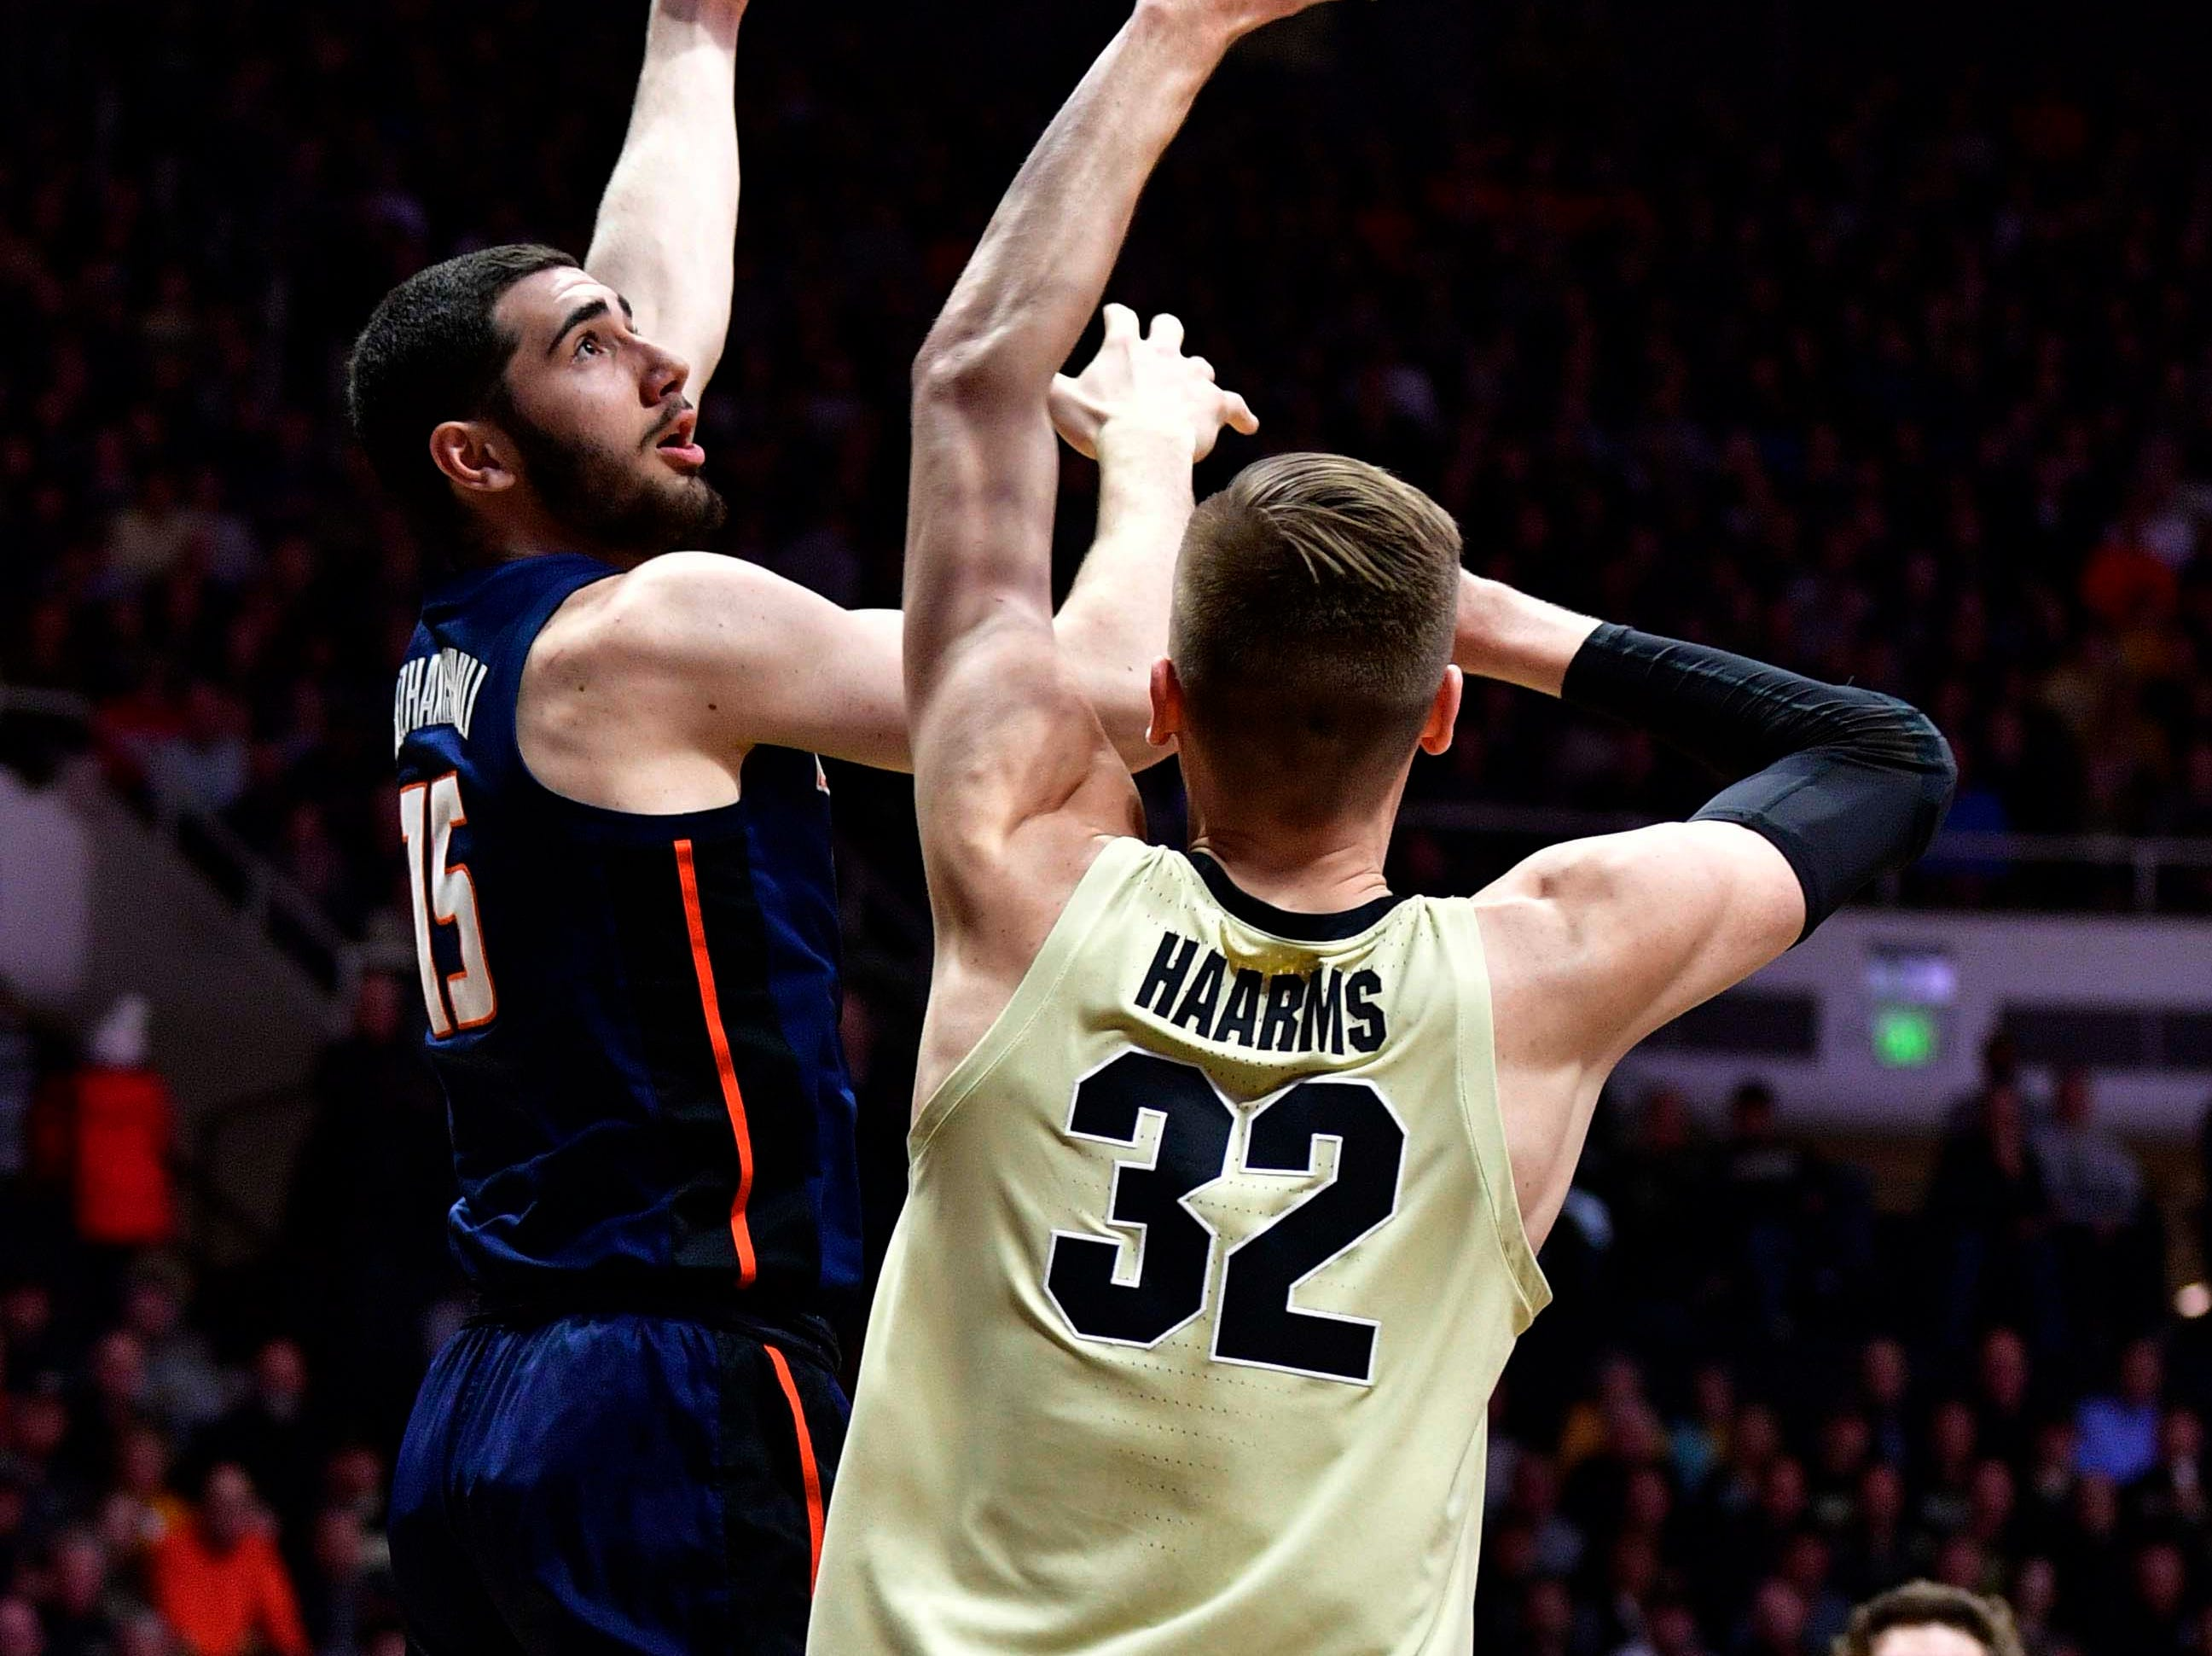 Feb 27, 2019; West Lafayette, IN, USA; Illinois Fighting Illini forward Giorgi Bezhanishvili (15) puts up a shot over Purdue Boilermakers center Matt Haarms (32) during the first half of the game at Mackey Arena. Mandatory Credit: Marc Lebryk-USA TODAY Sports